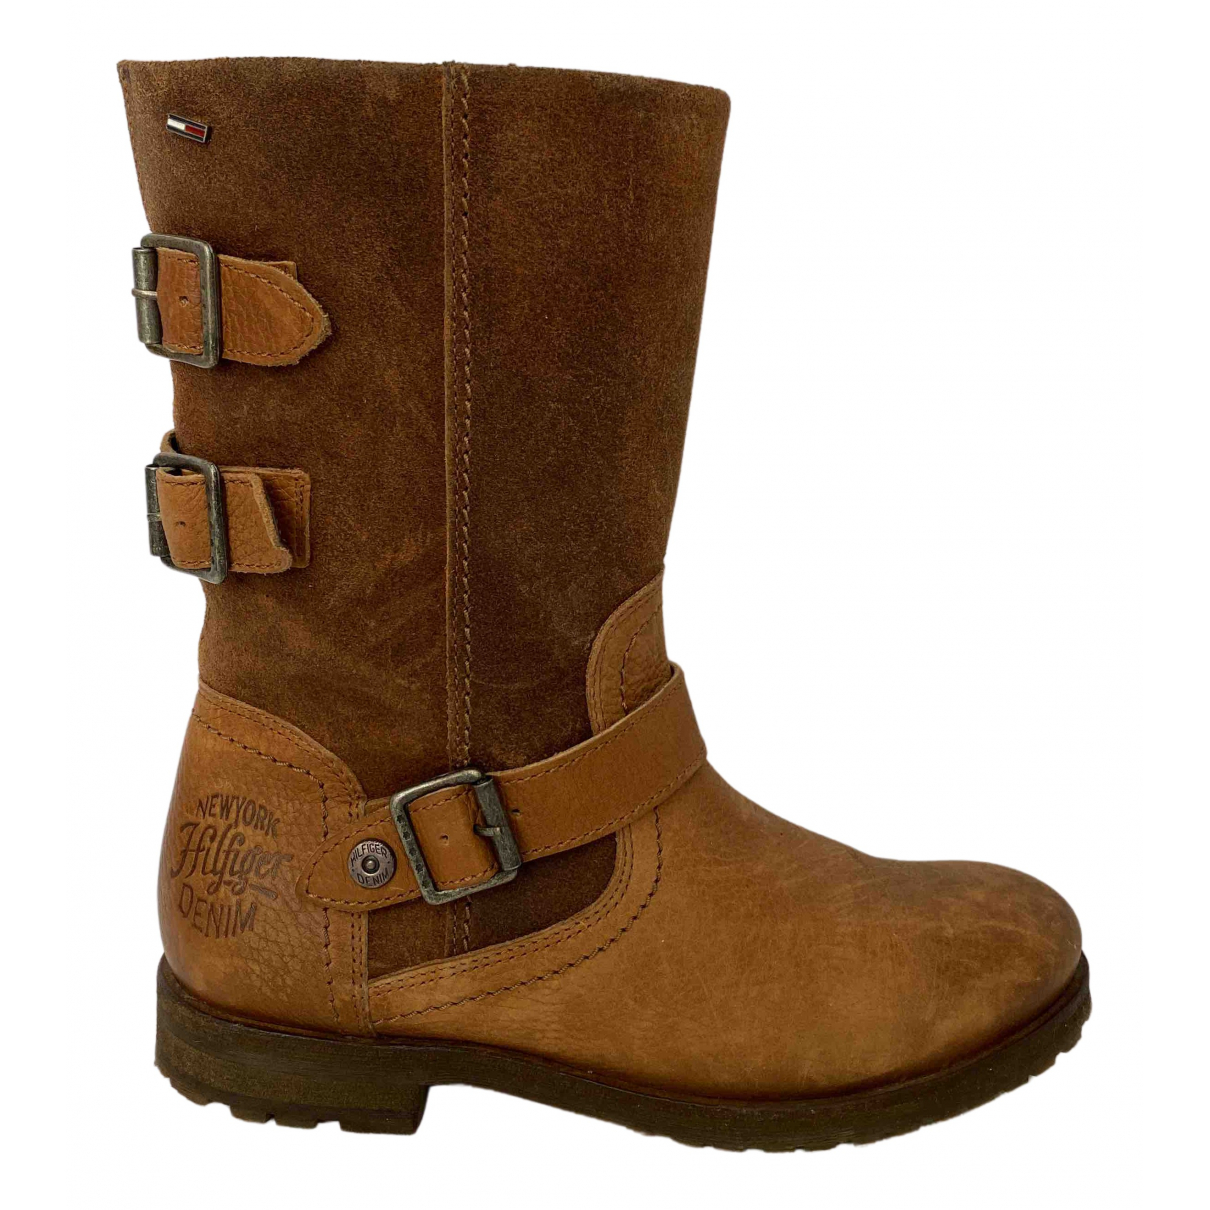 Tommy Hilfiger N Brown Leather Boots for Women 37 EU